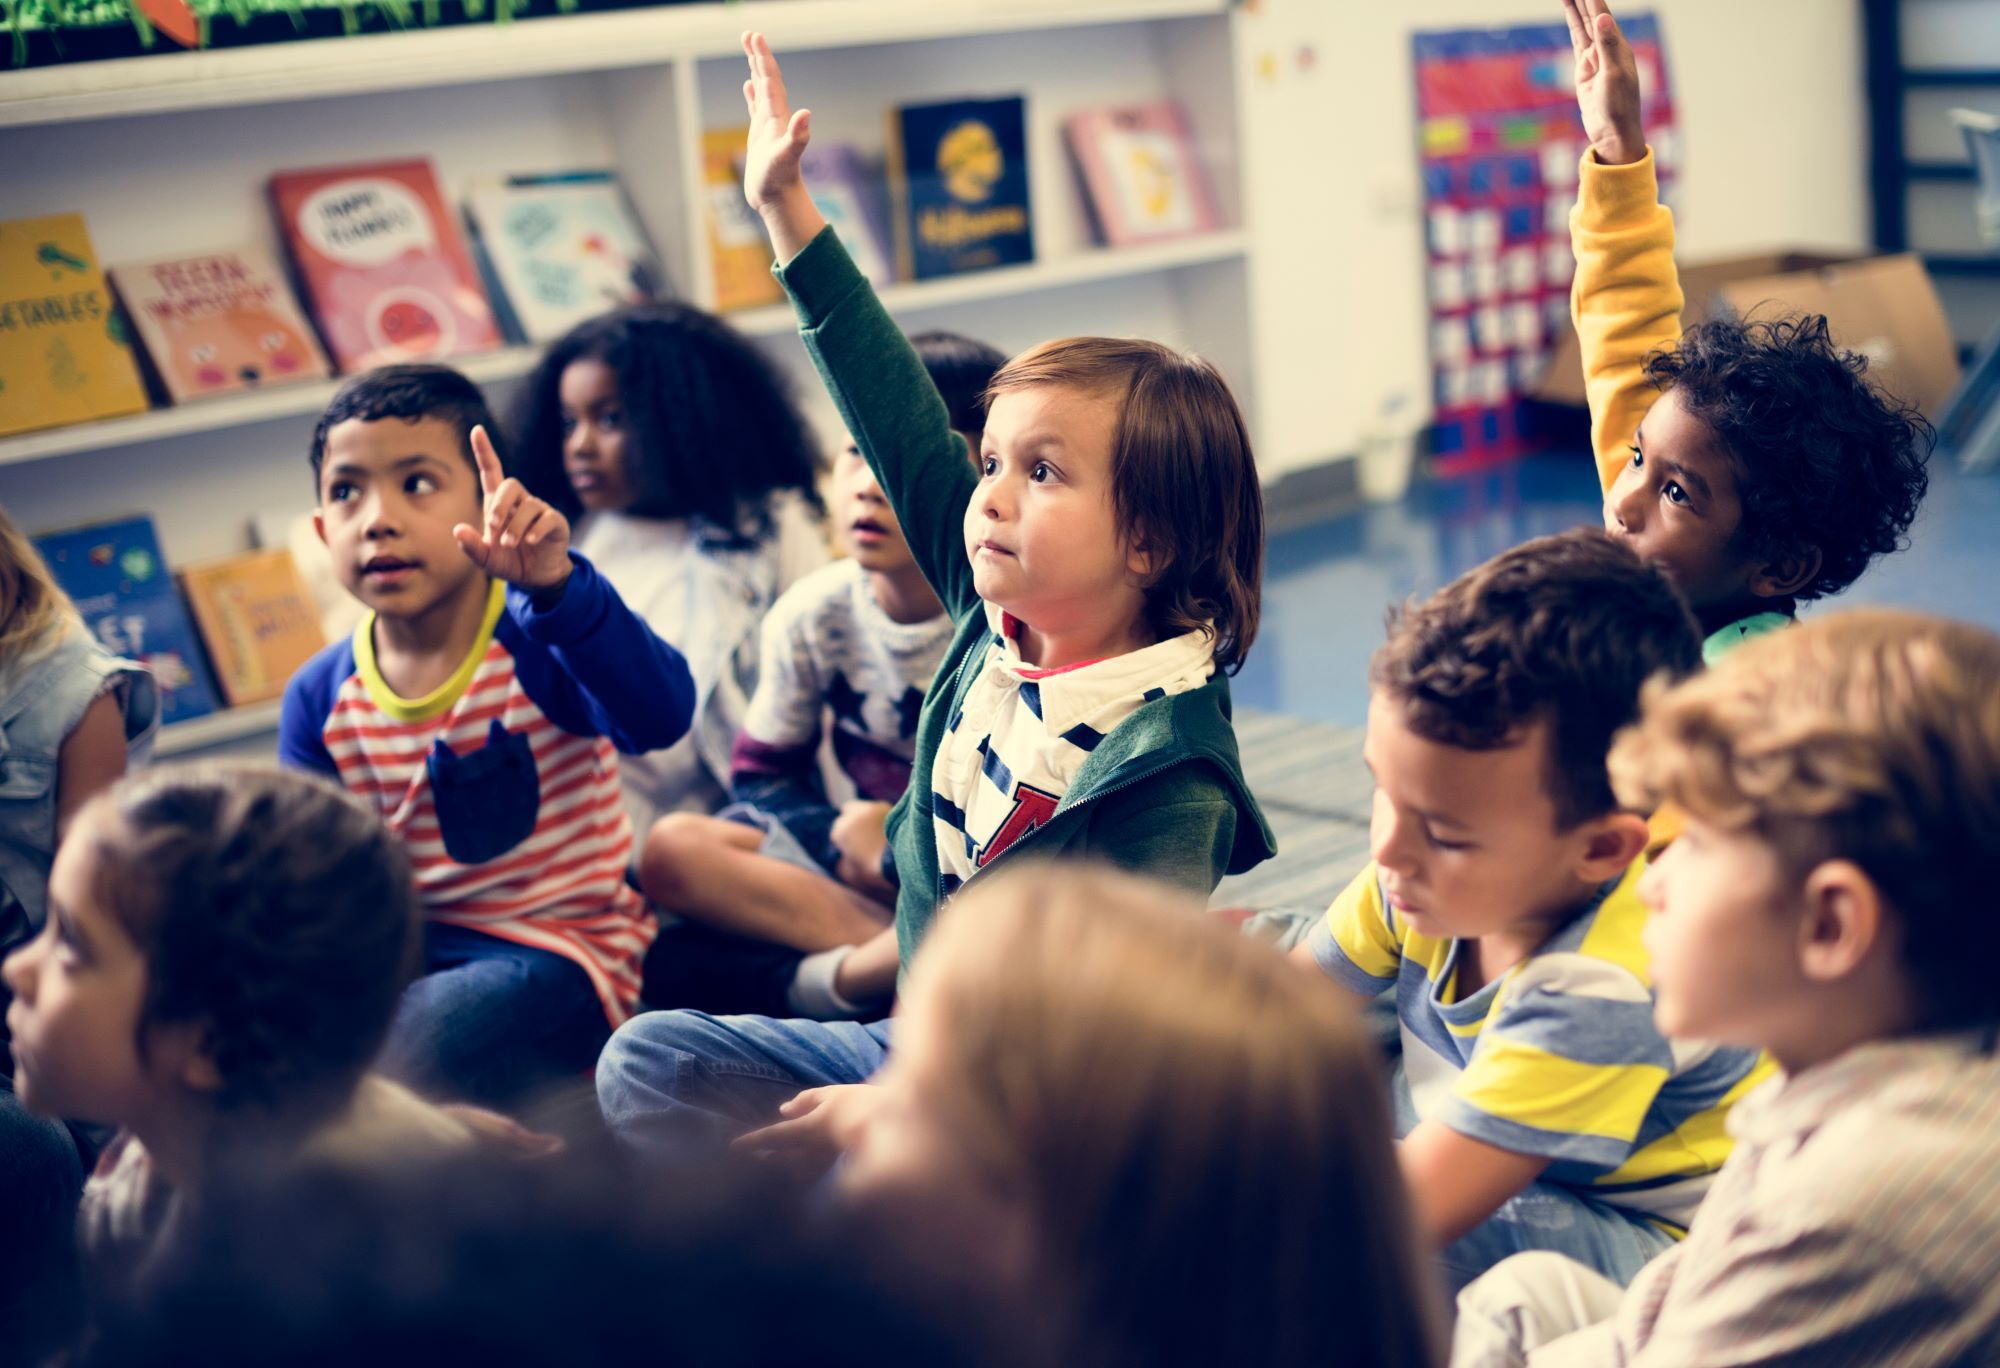 children in classroom, one with hand up